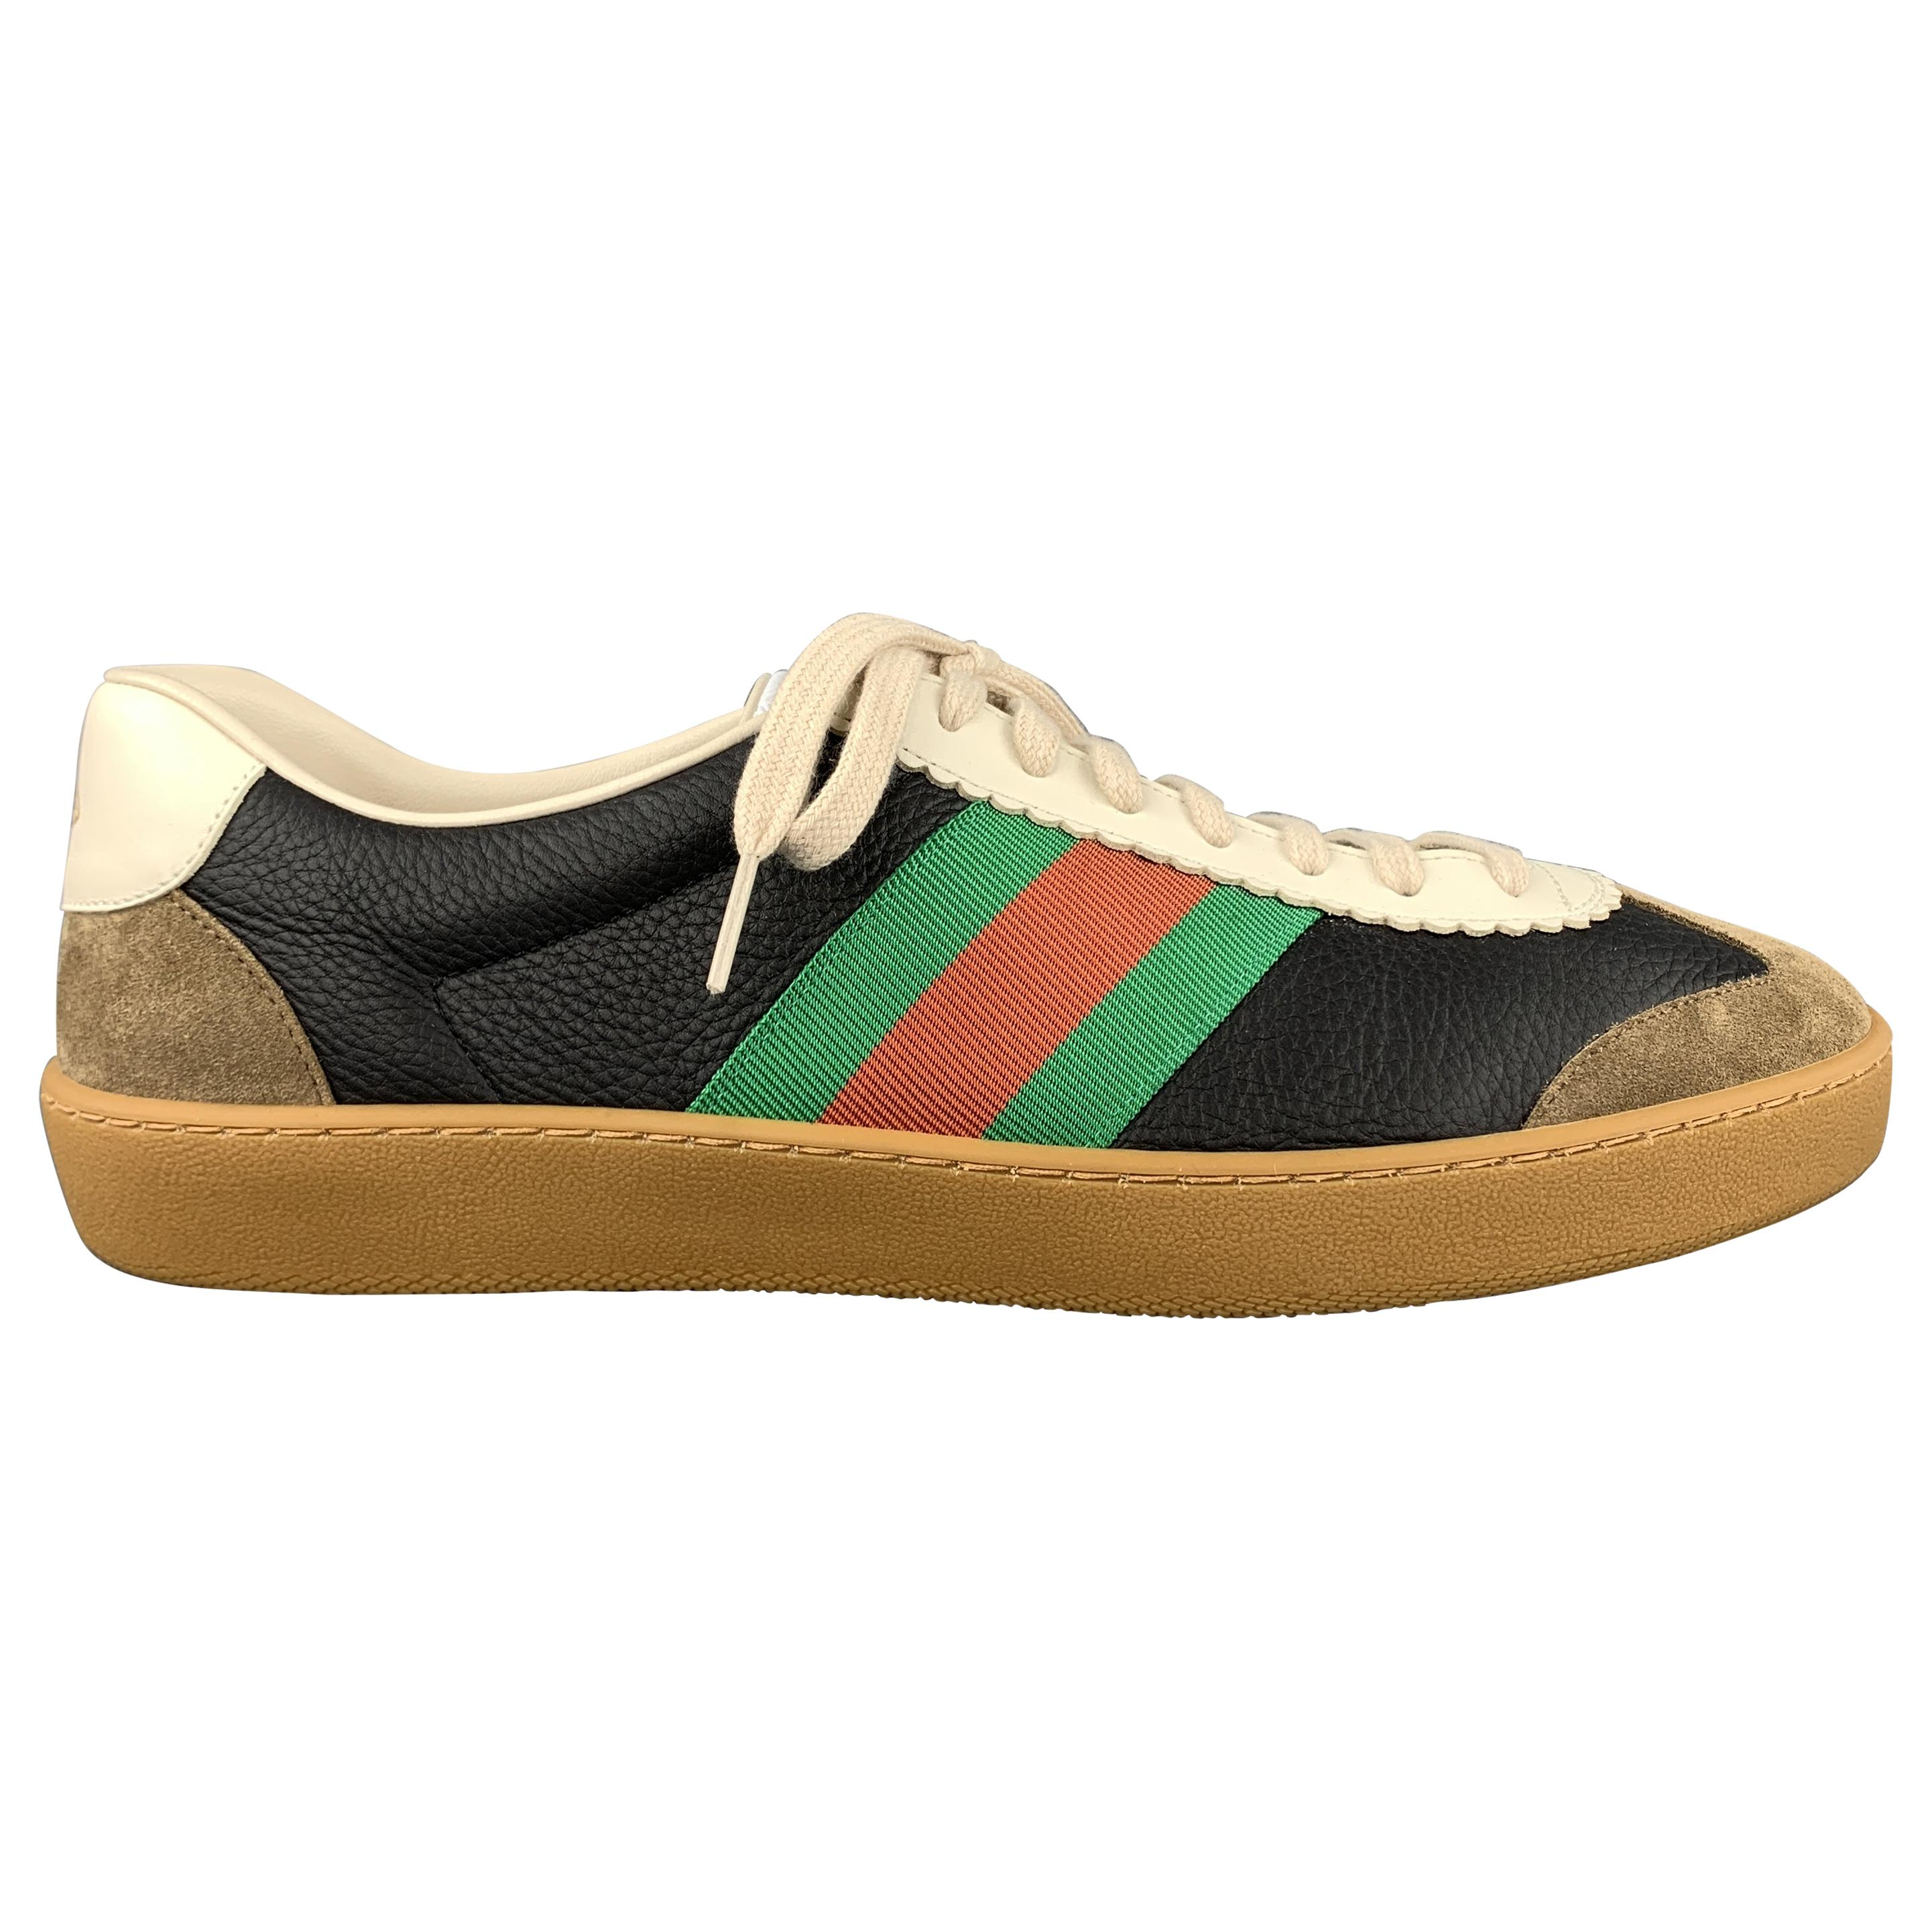 43f71b0b9 Vintage Gucci Shoes - 131 For Sale at 1stdibs